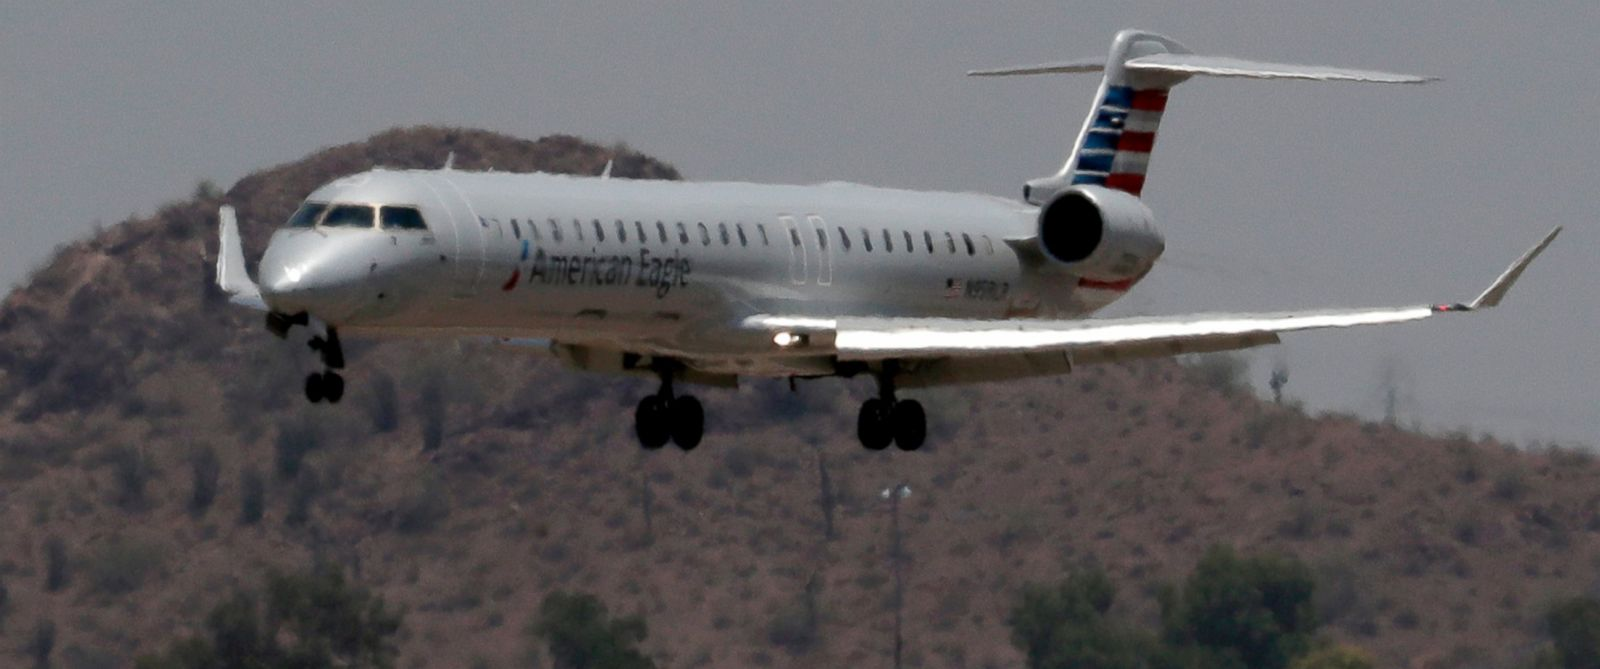 PHOTO: An American Eagle jet is seen through heat ripples as it lands at Sky Harbor International Airport, June 19, 2017, in Phoenix. American Airlines cancelled dozens flights out of Phoenix today due to extreme heat.